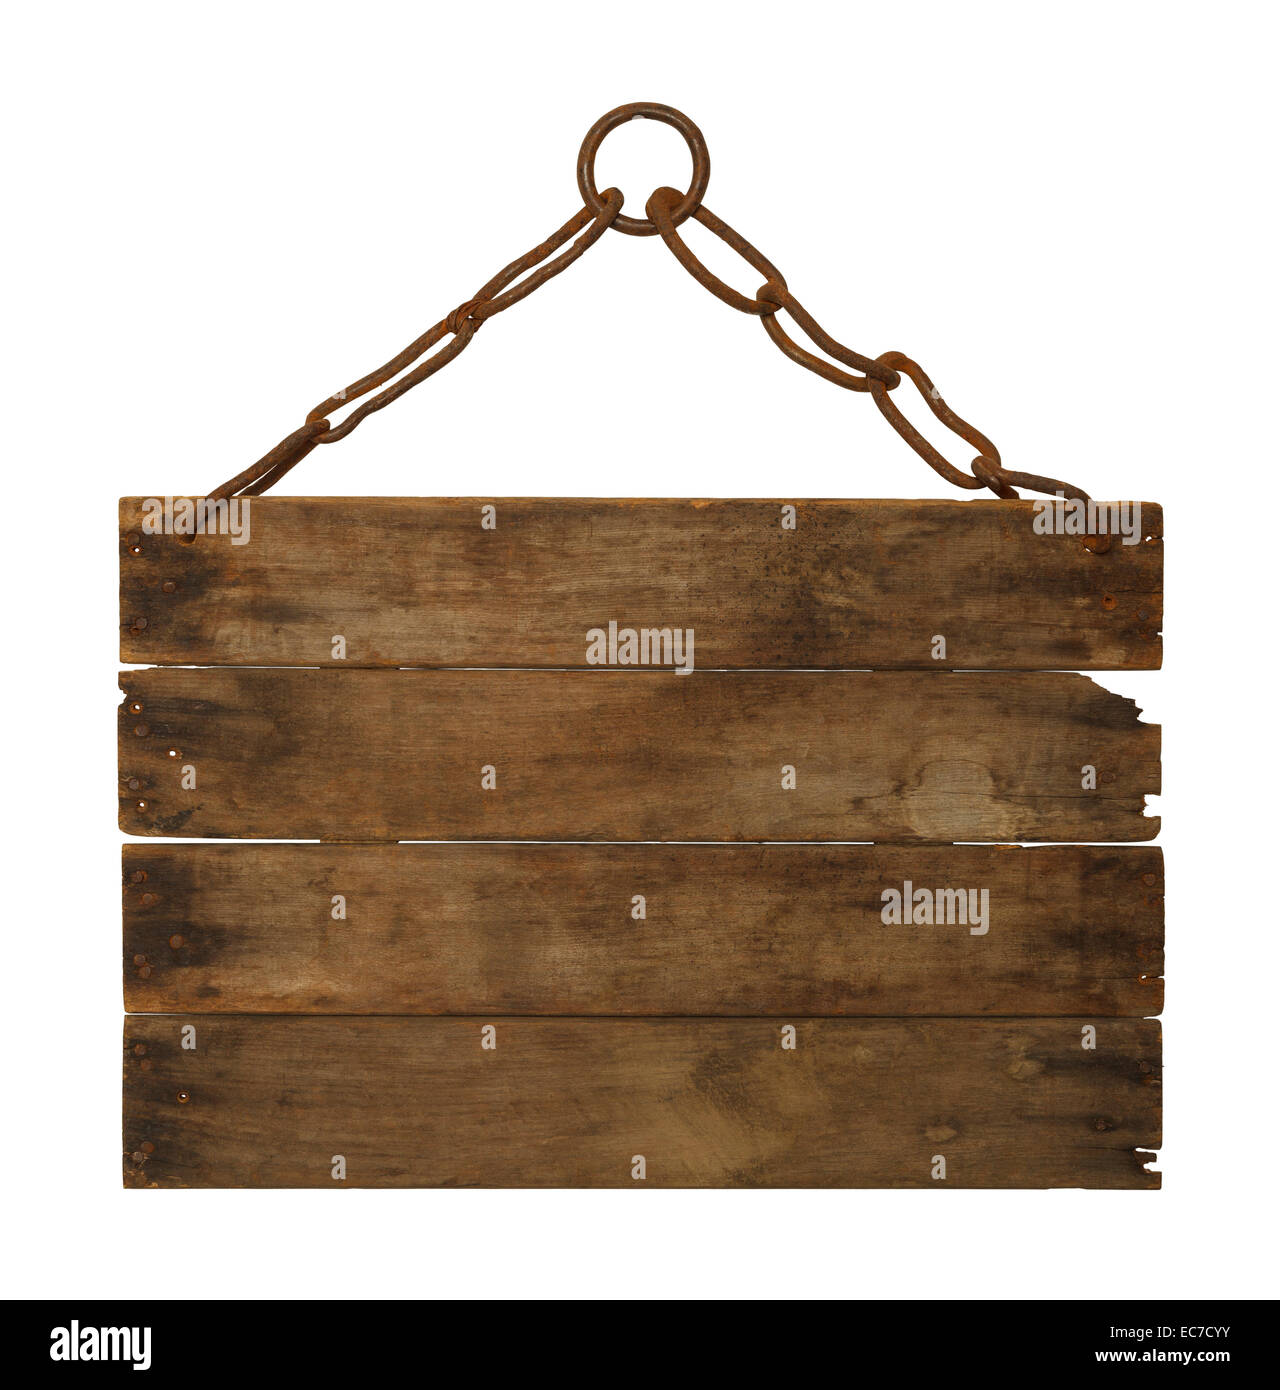 hanging sign chain stock photos hanging sign chain stock. Black Bedroom Furniture Sets. Home Design Ideas